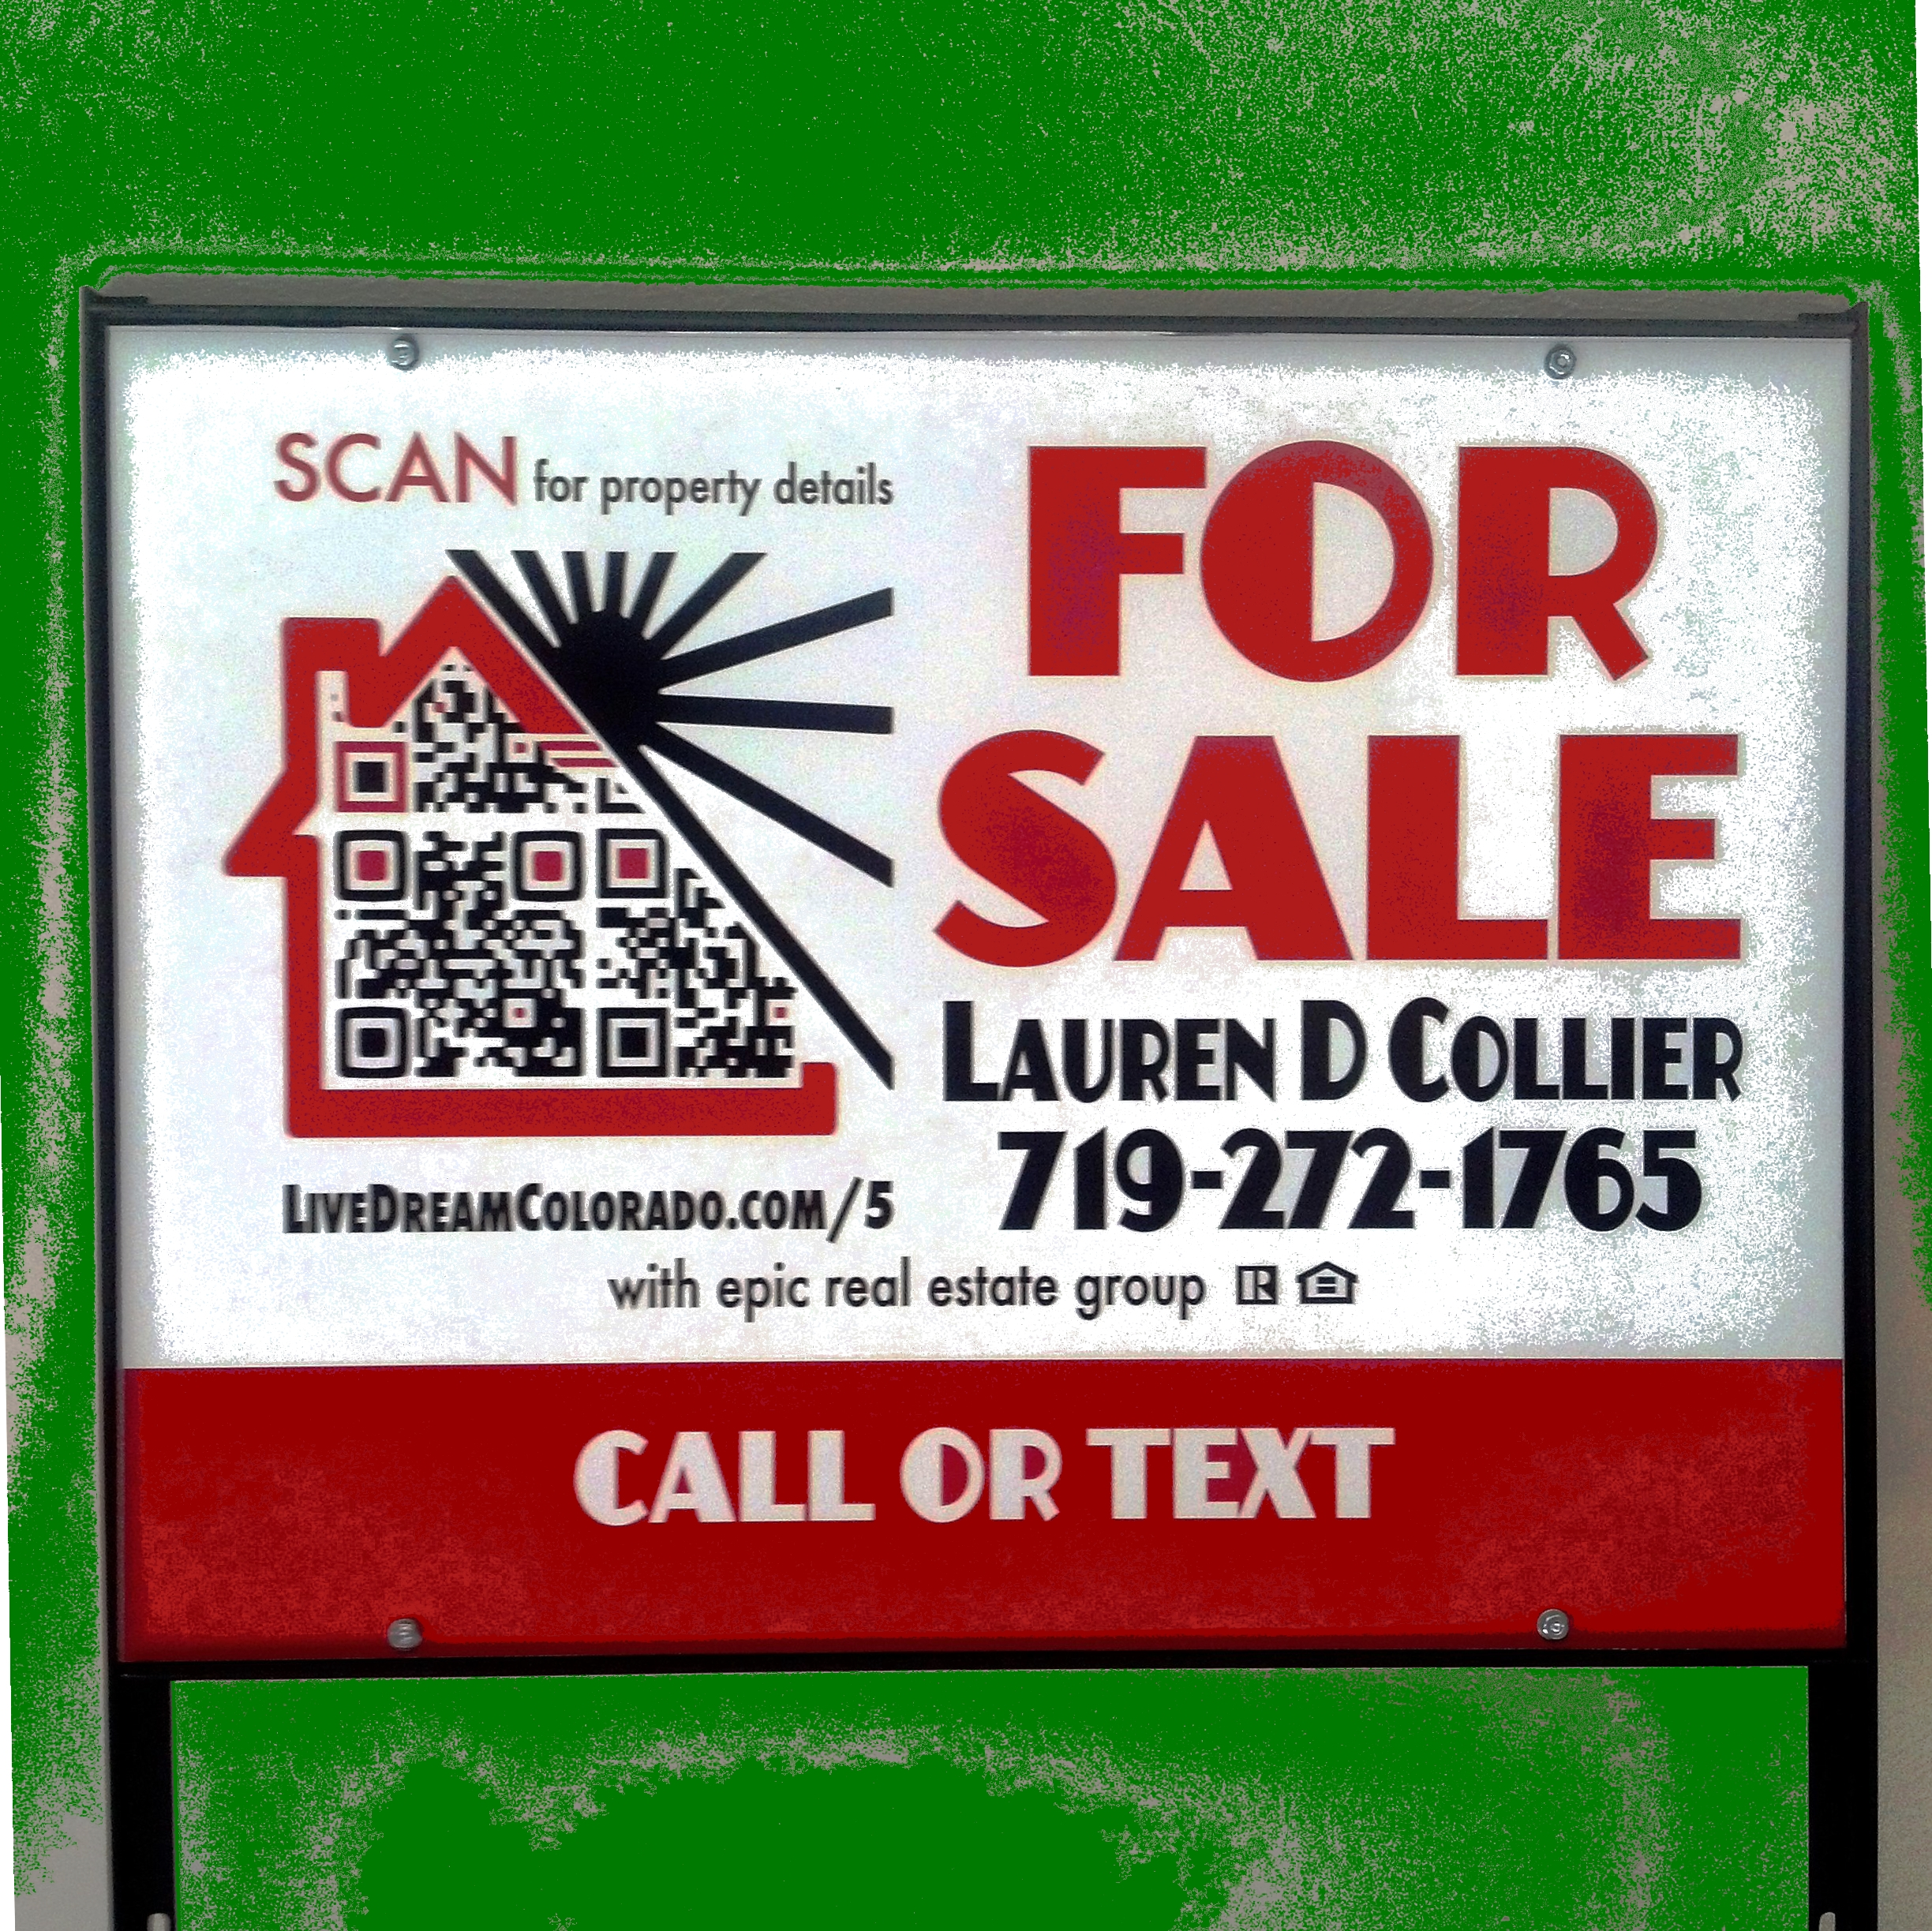 What Are QR Codes For In Real Estate?